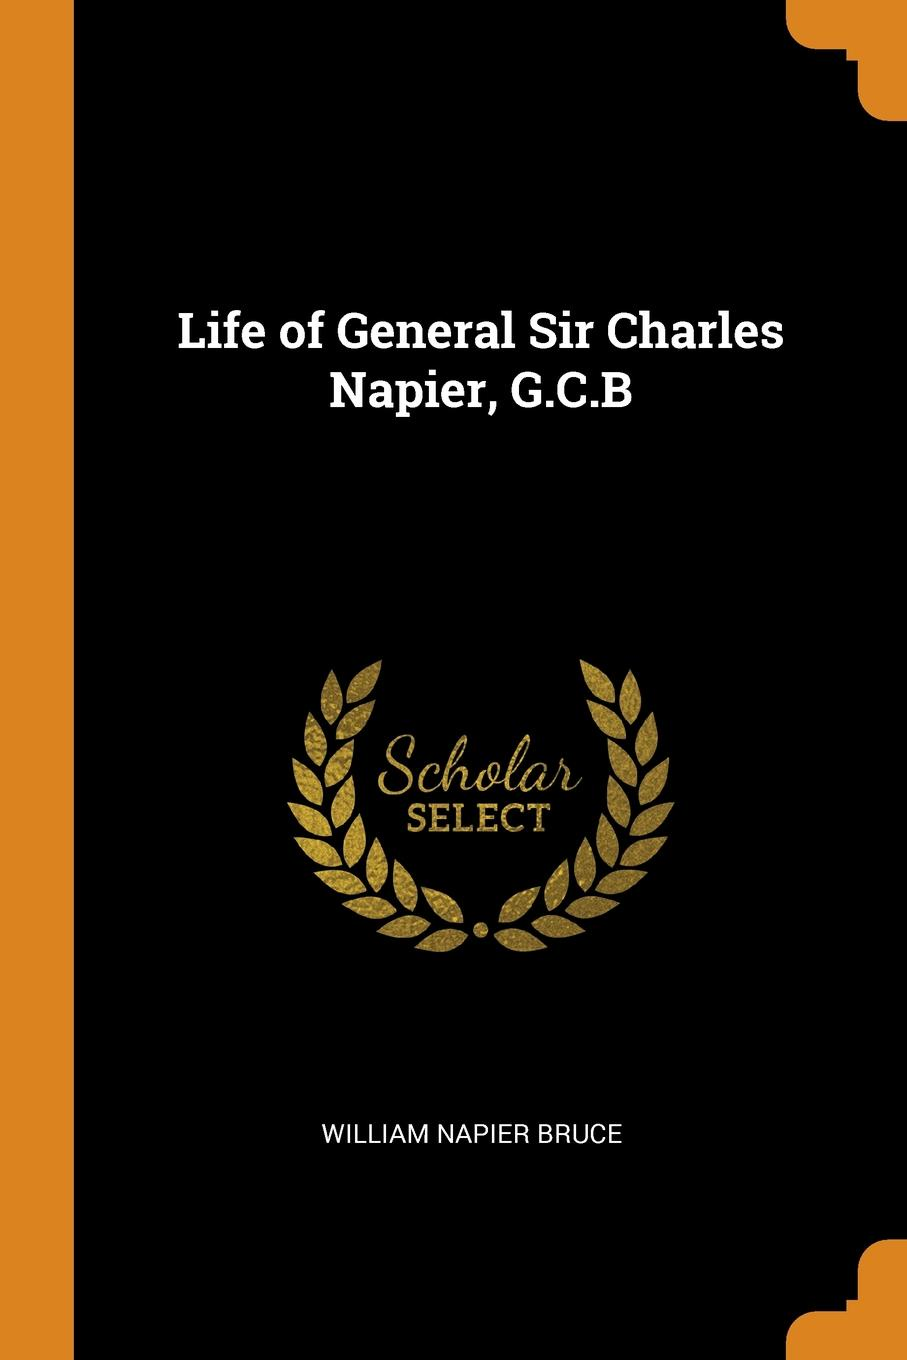 Life of General Sir Charles Napier, G.C.B